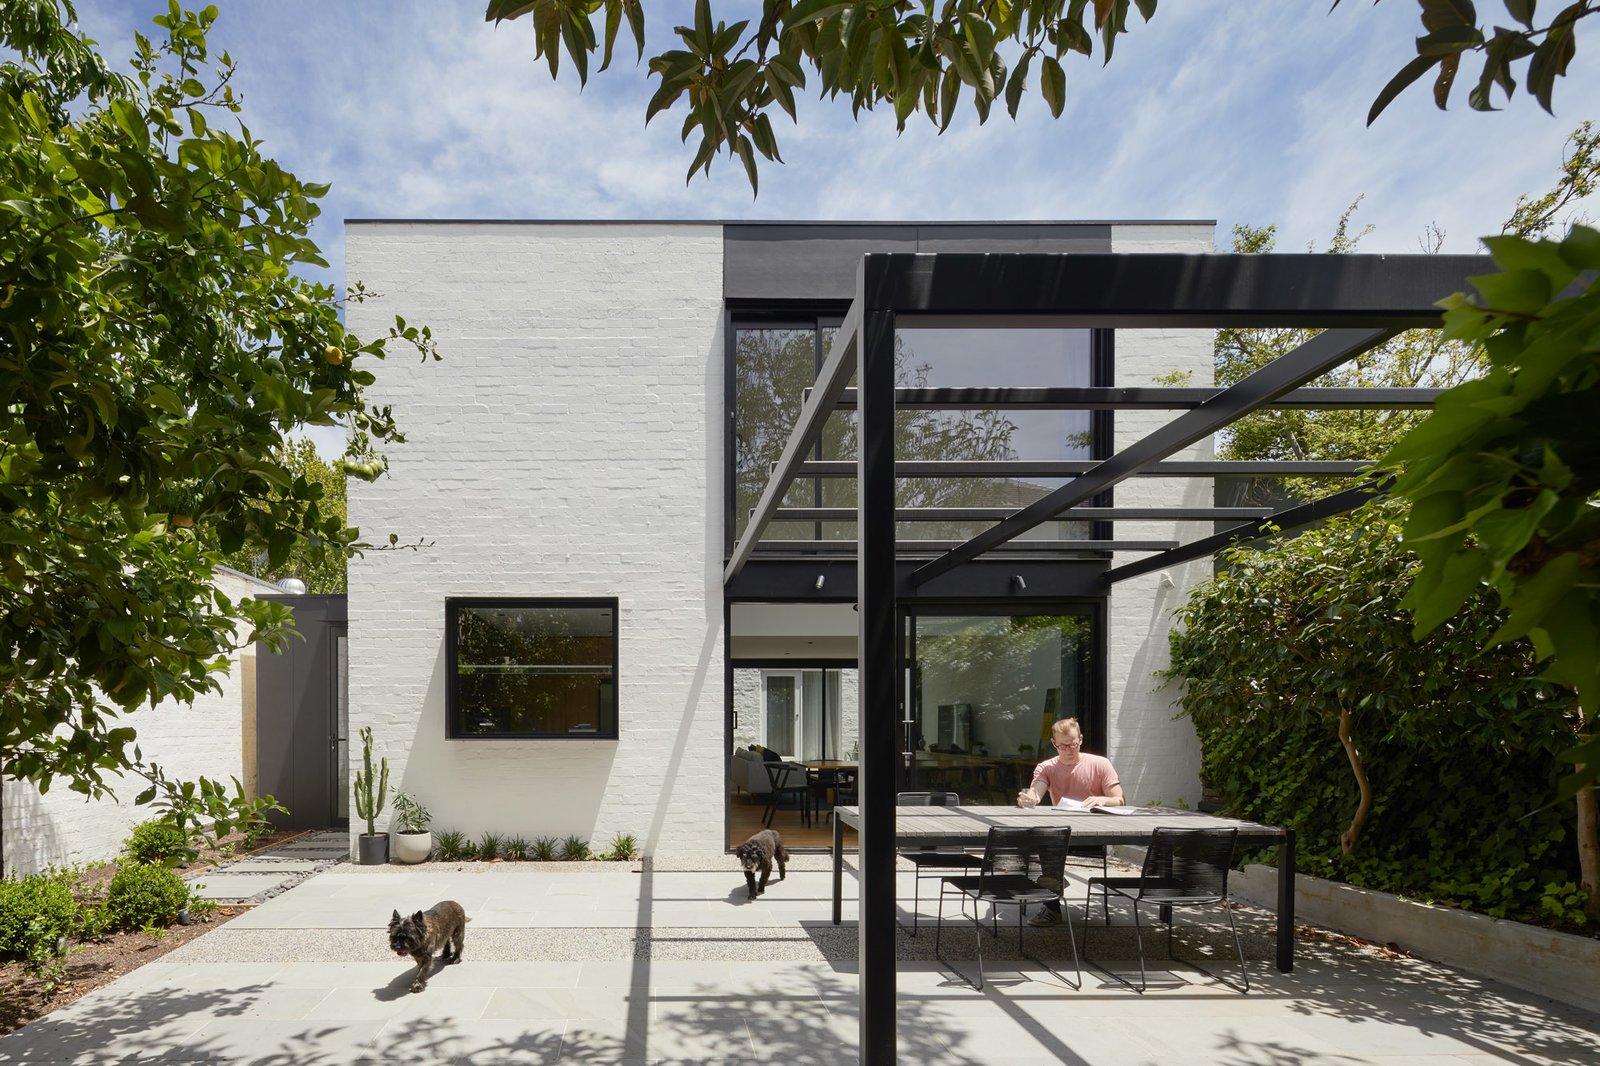 Outdoor, Back Yard, Raised Planters, Trees, Hardscapes, Metal Patio, Porch, Deck, and Shrubs rear outdoor space  Photo 17 of 21 in Thanks to a Double-Height Dining Room, a Melbourne Home Basks in Sunshine and Courtyard Views from South Yarra Void House